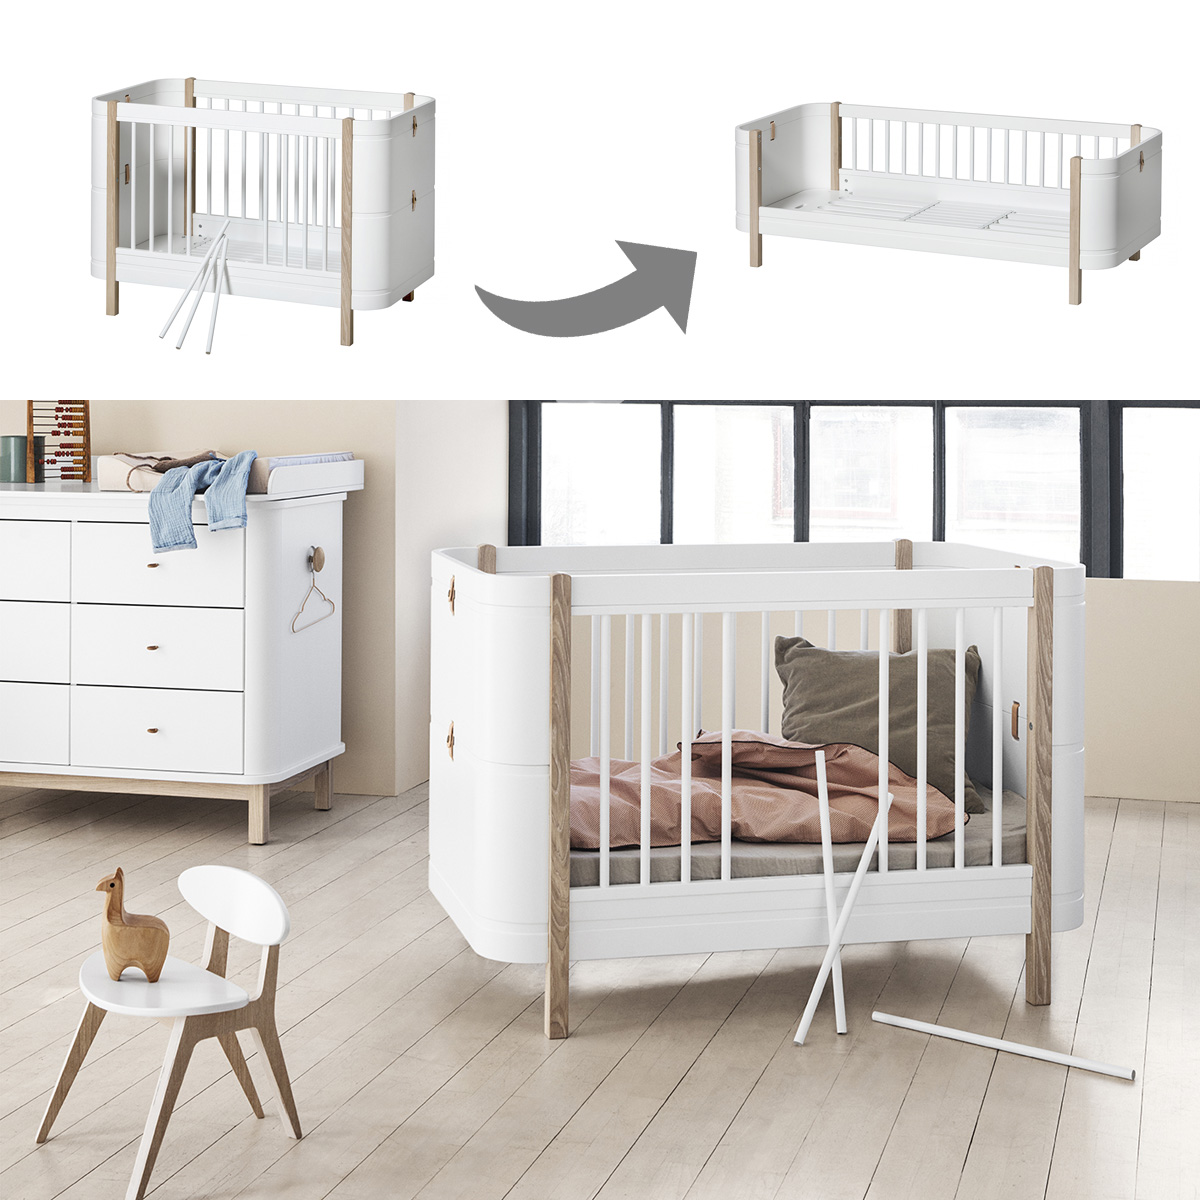 oliver furniture wood mini set babybett juniorbett. Black Bedroom Furniture Sets. Home Design Ideas